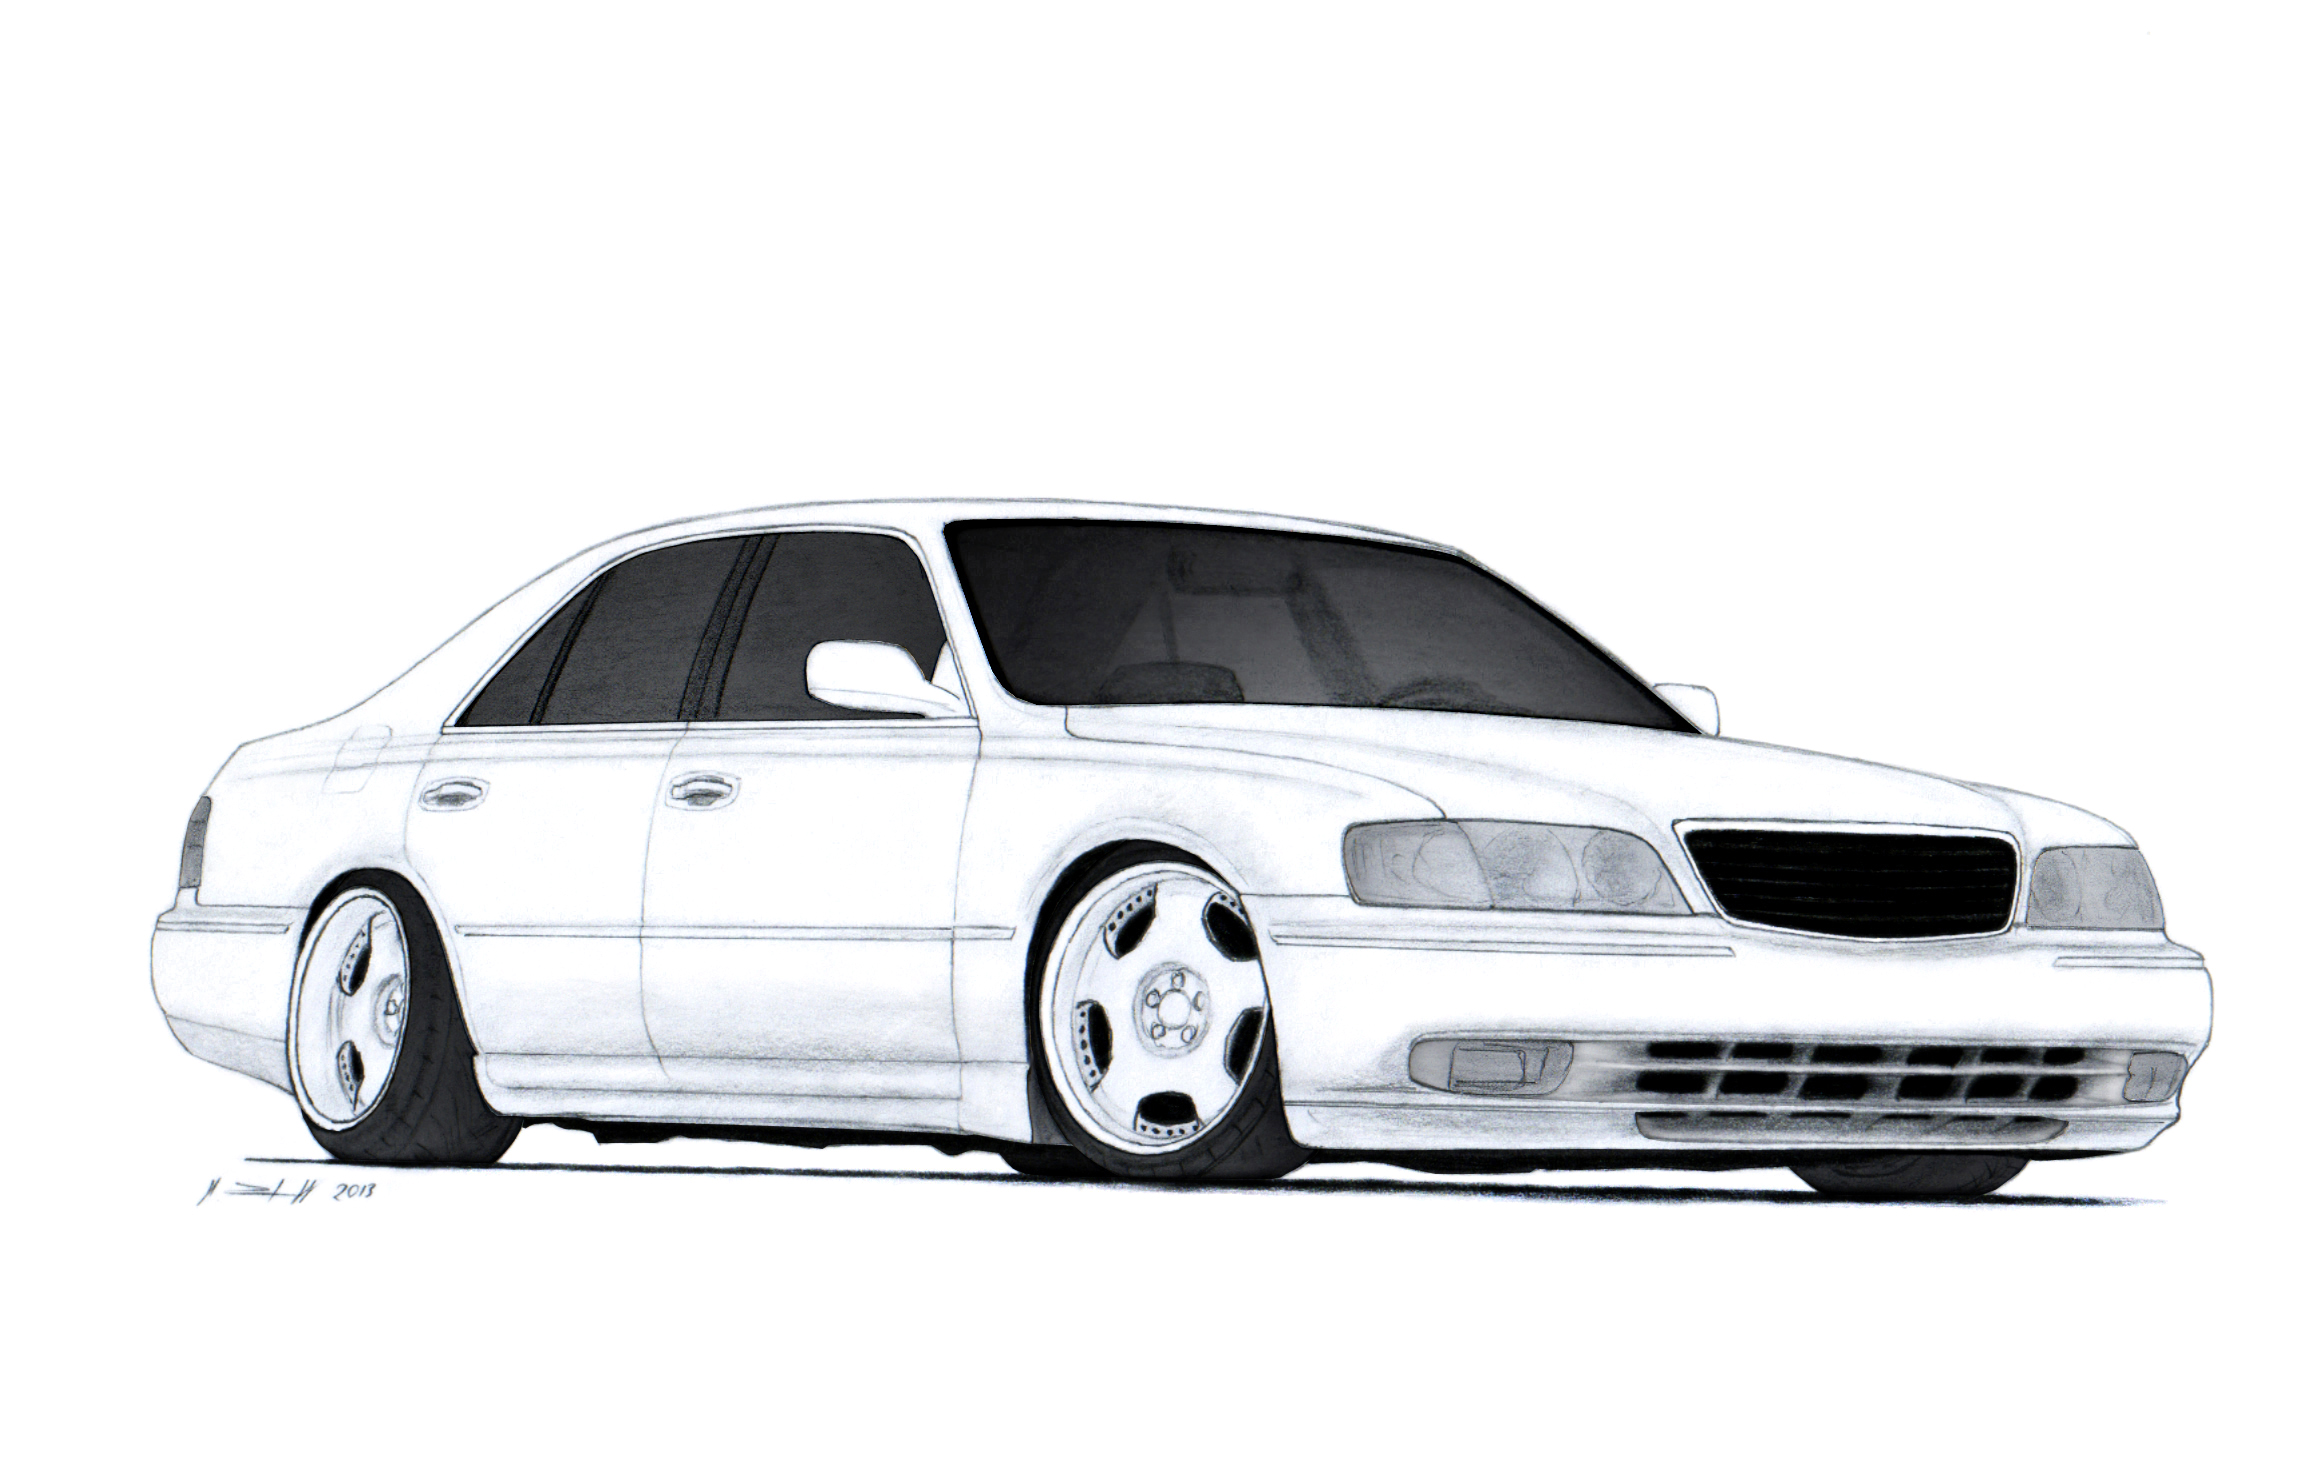 Infiniti Q45 Y33 Vip Style Car Drawing by Vertualissimo on DeviantArt